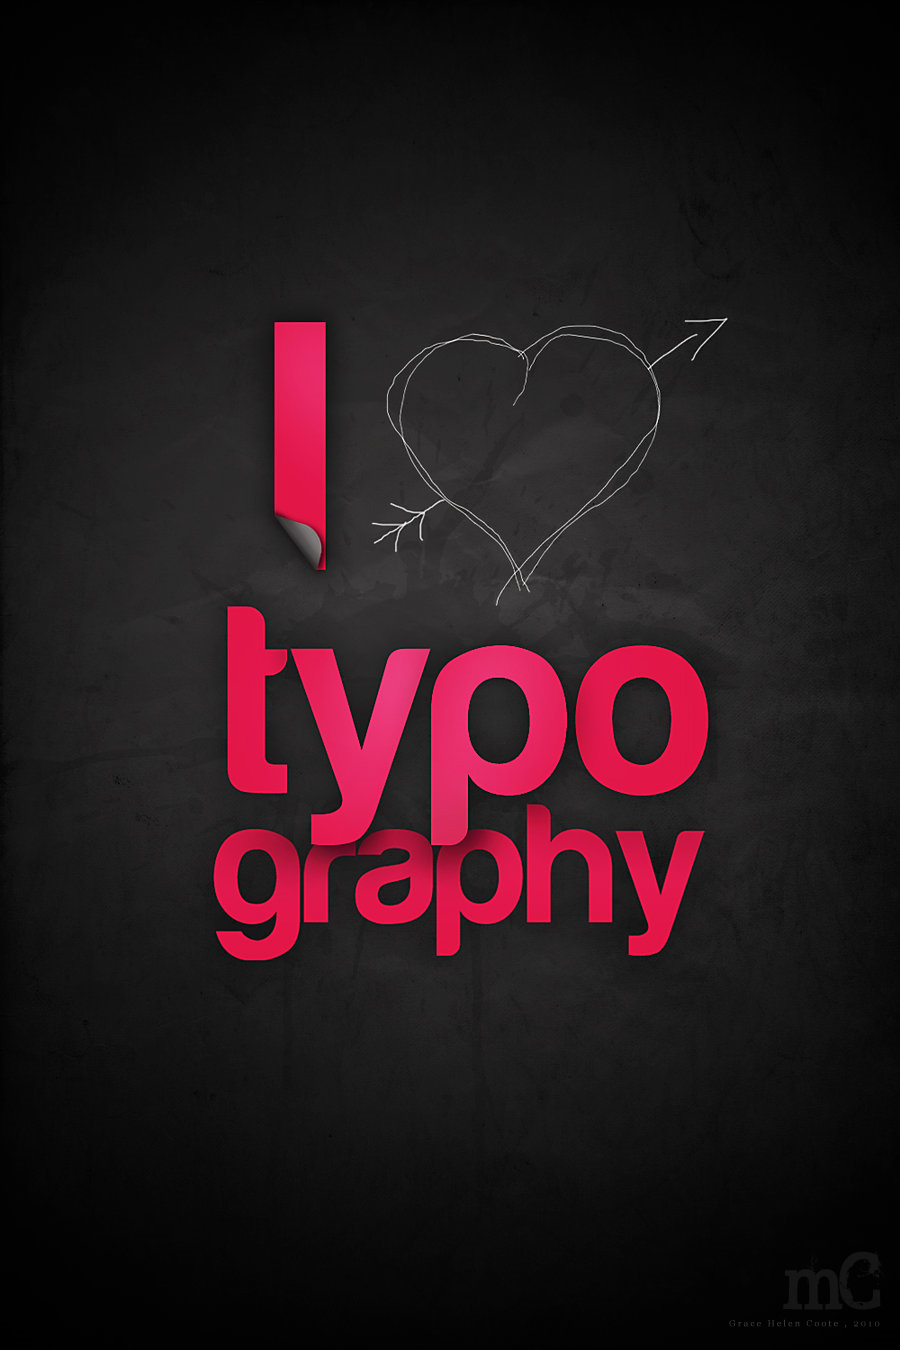 Cute Typography Art 13 Cute Typography